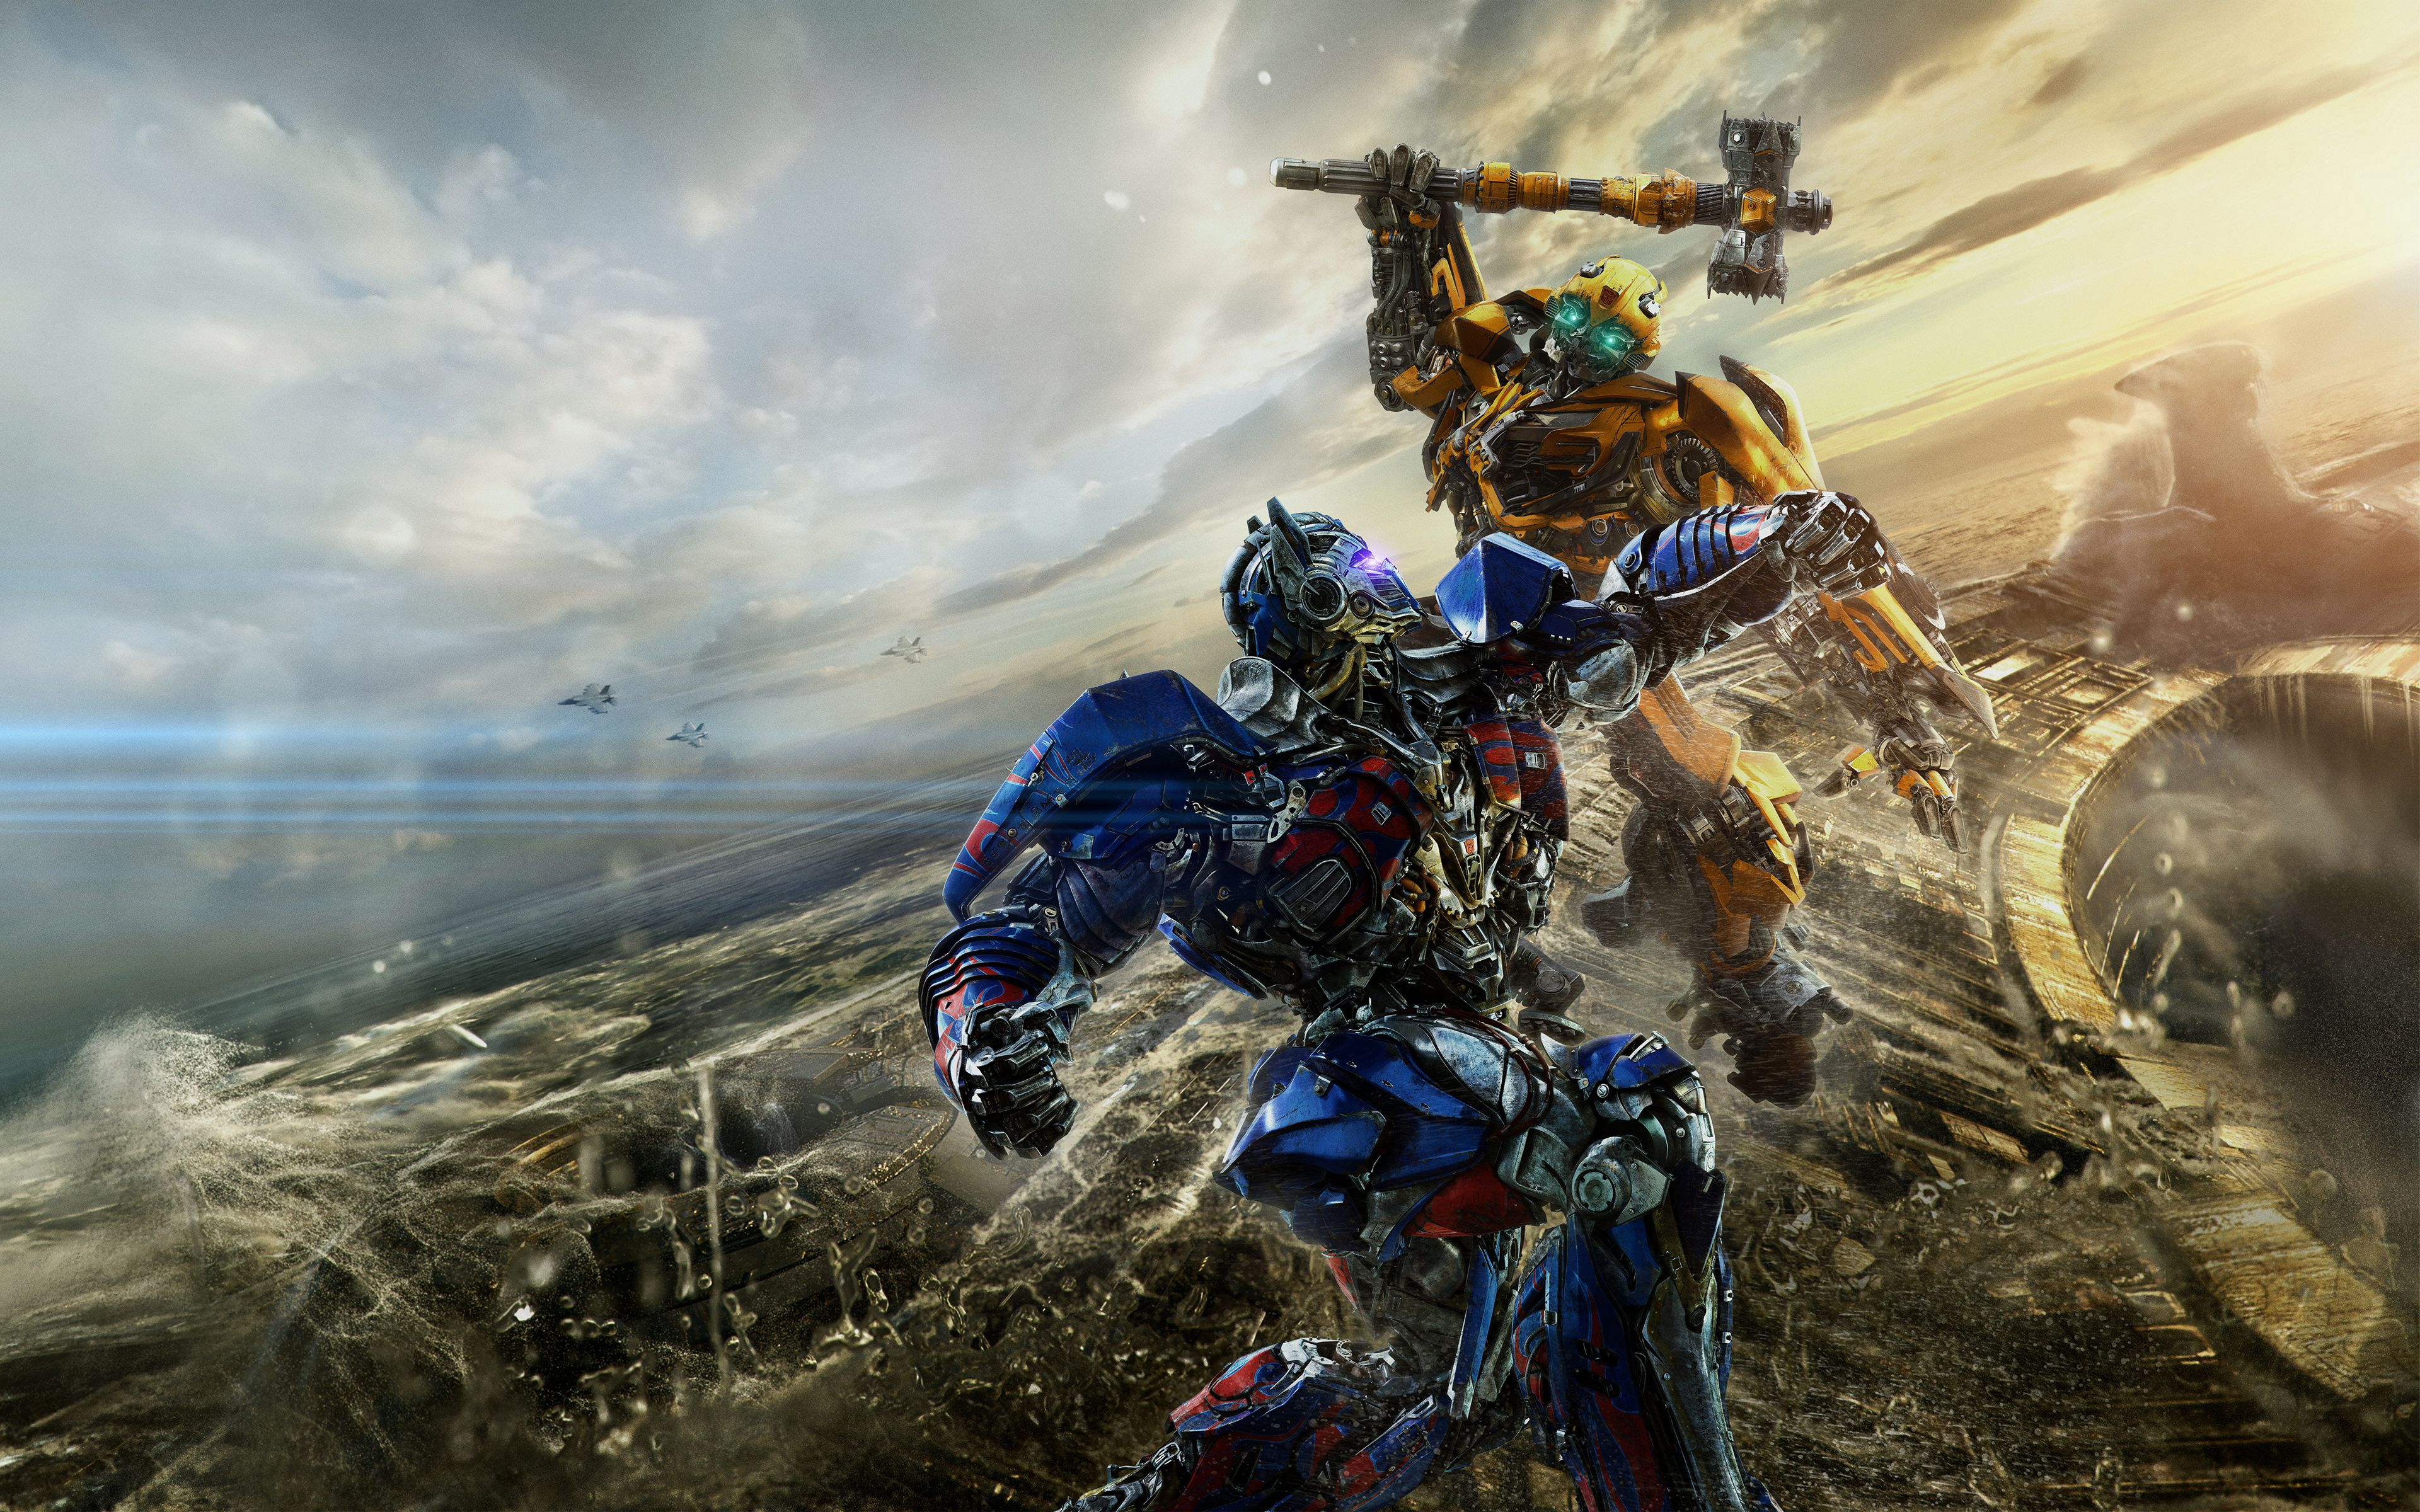 Bumblebee vs Optimus Prime Transformers The Last Knight 5K